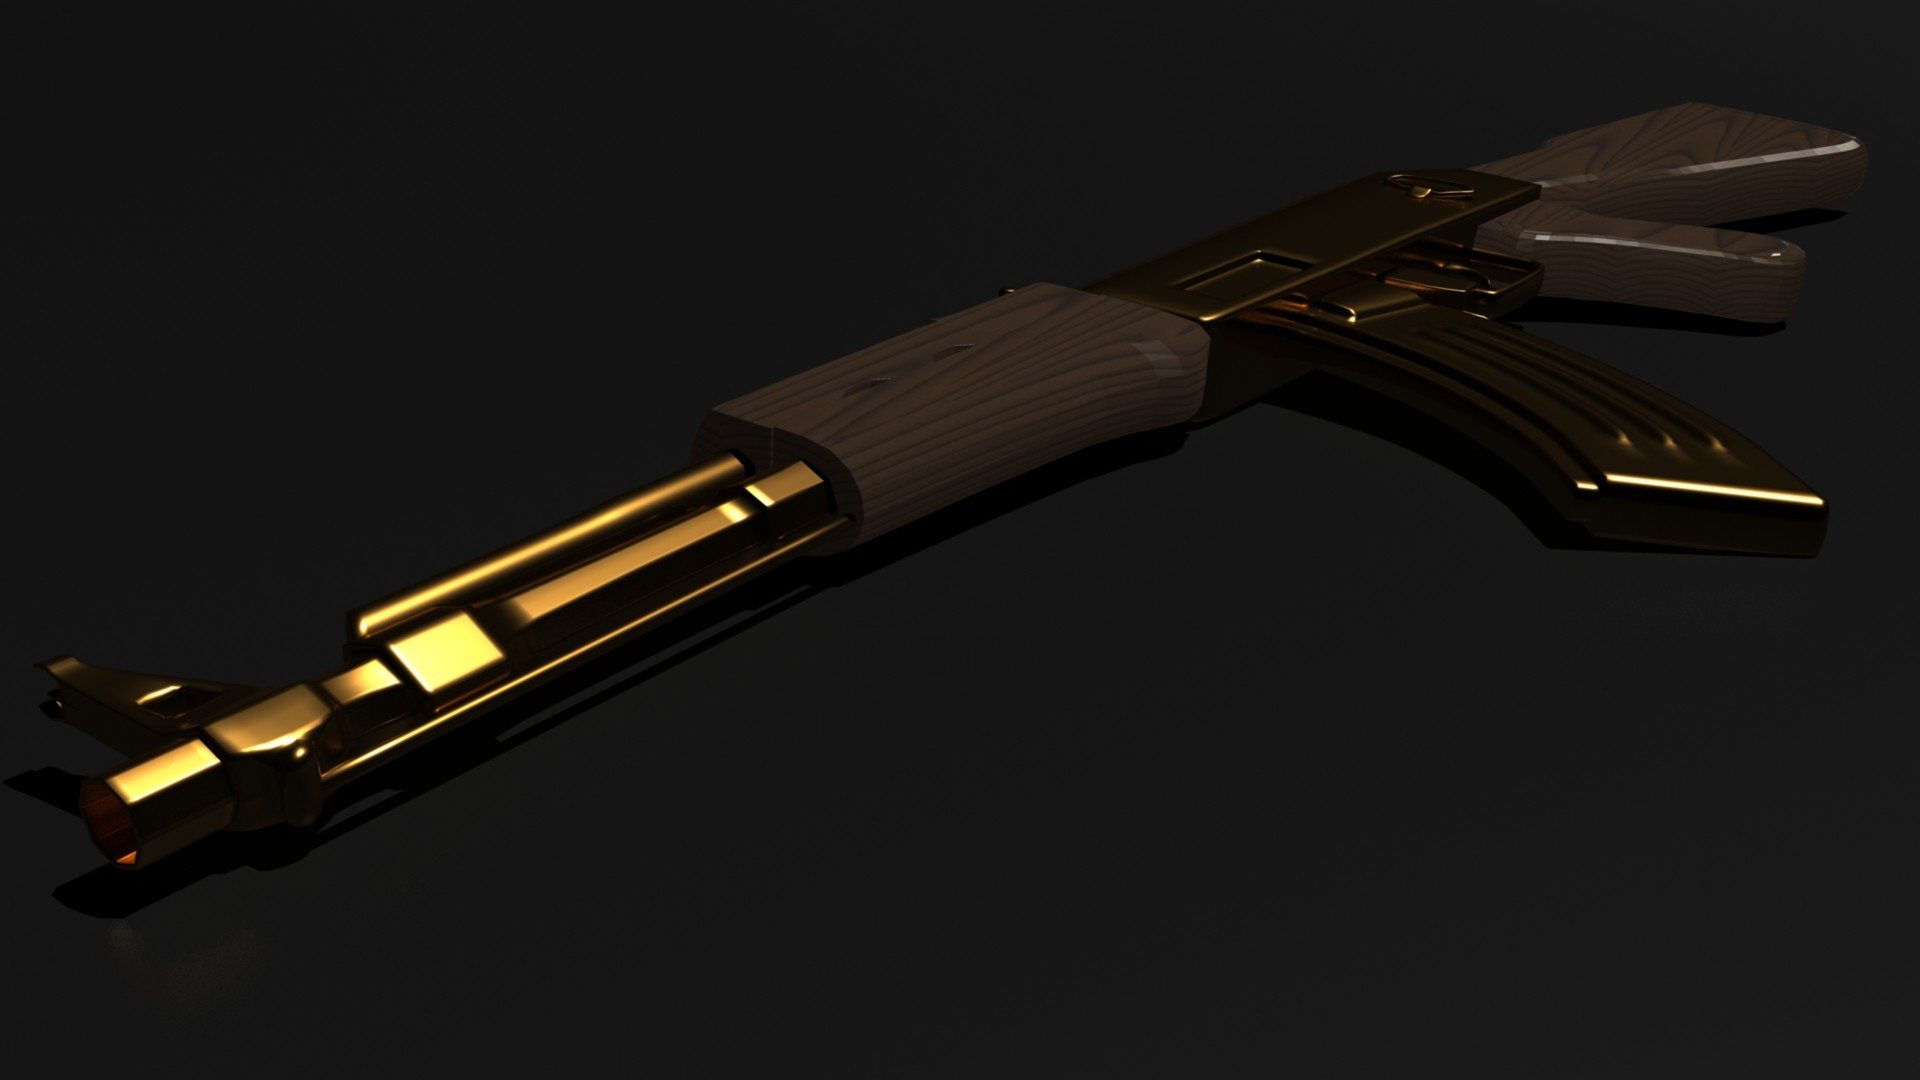 1920x1080 Gold AK 47 Wallpapers